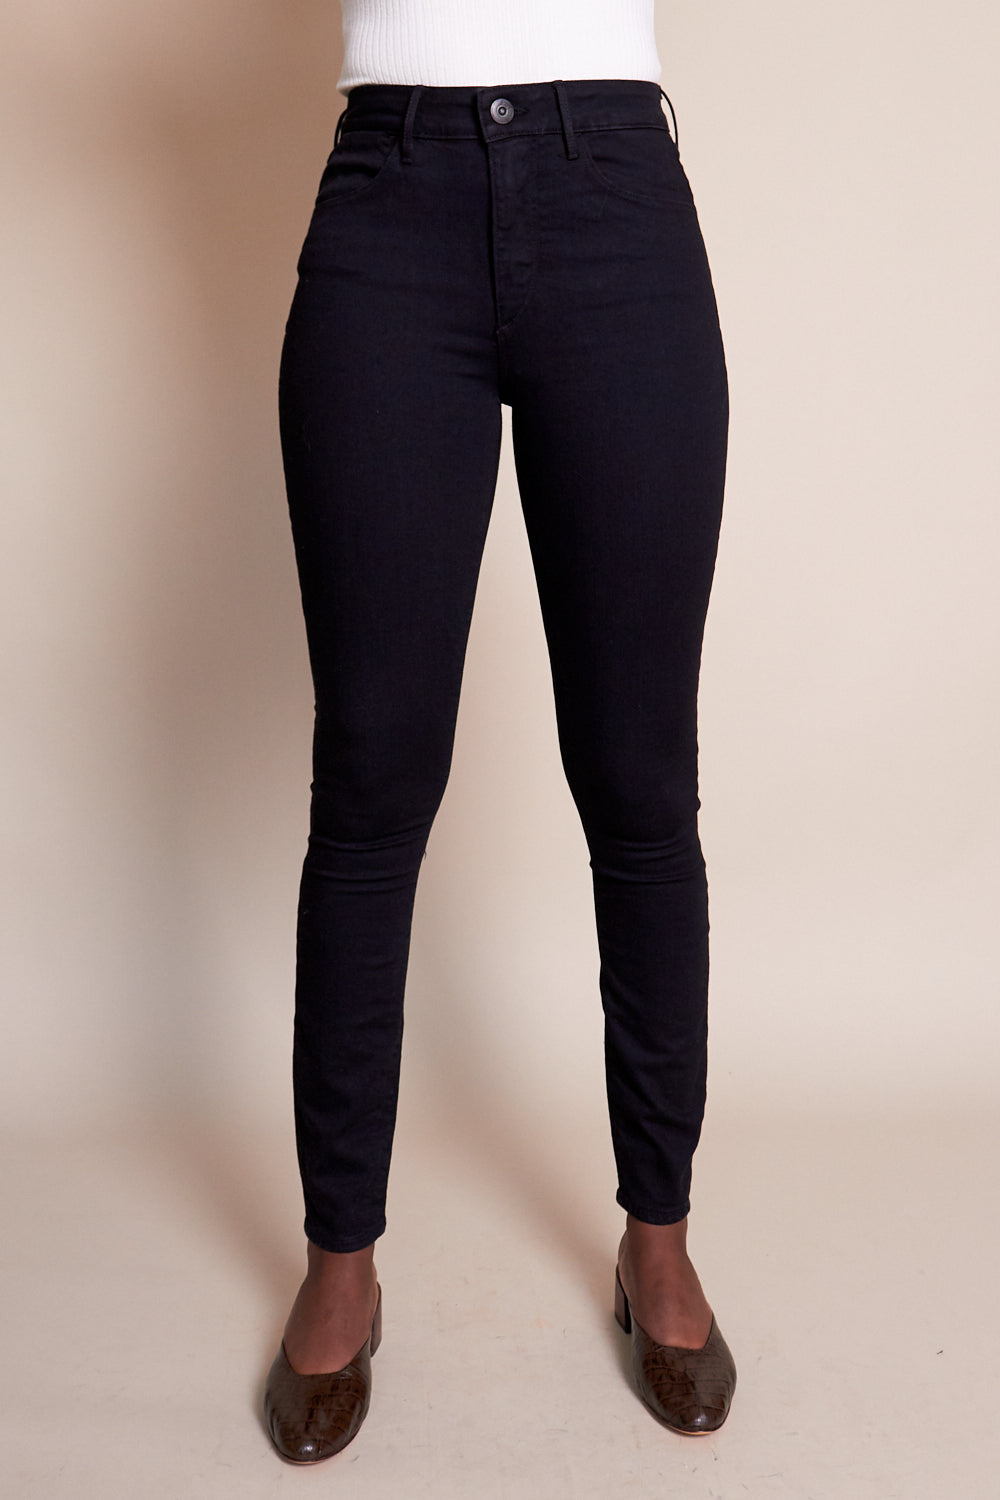 W3 Channel Seam Skinny Jean in Black No.1